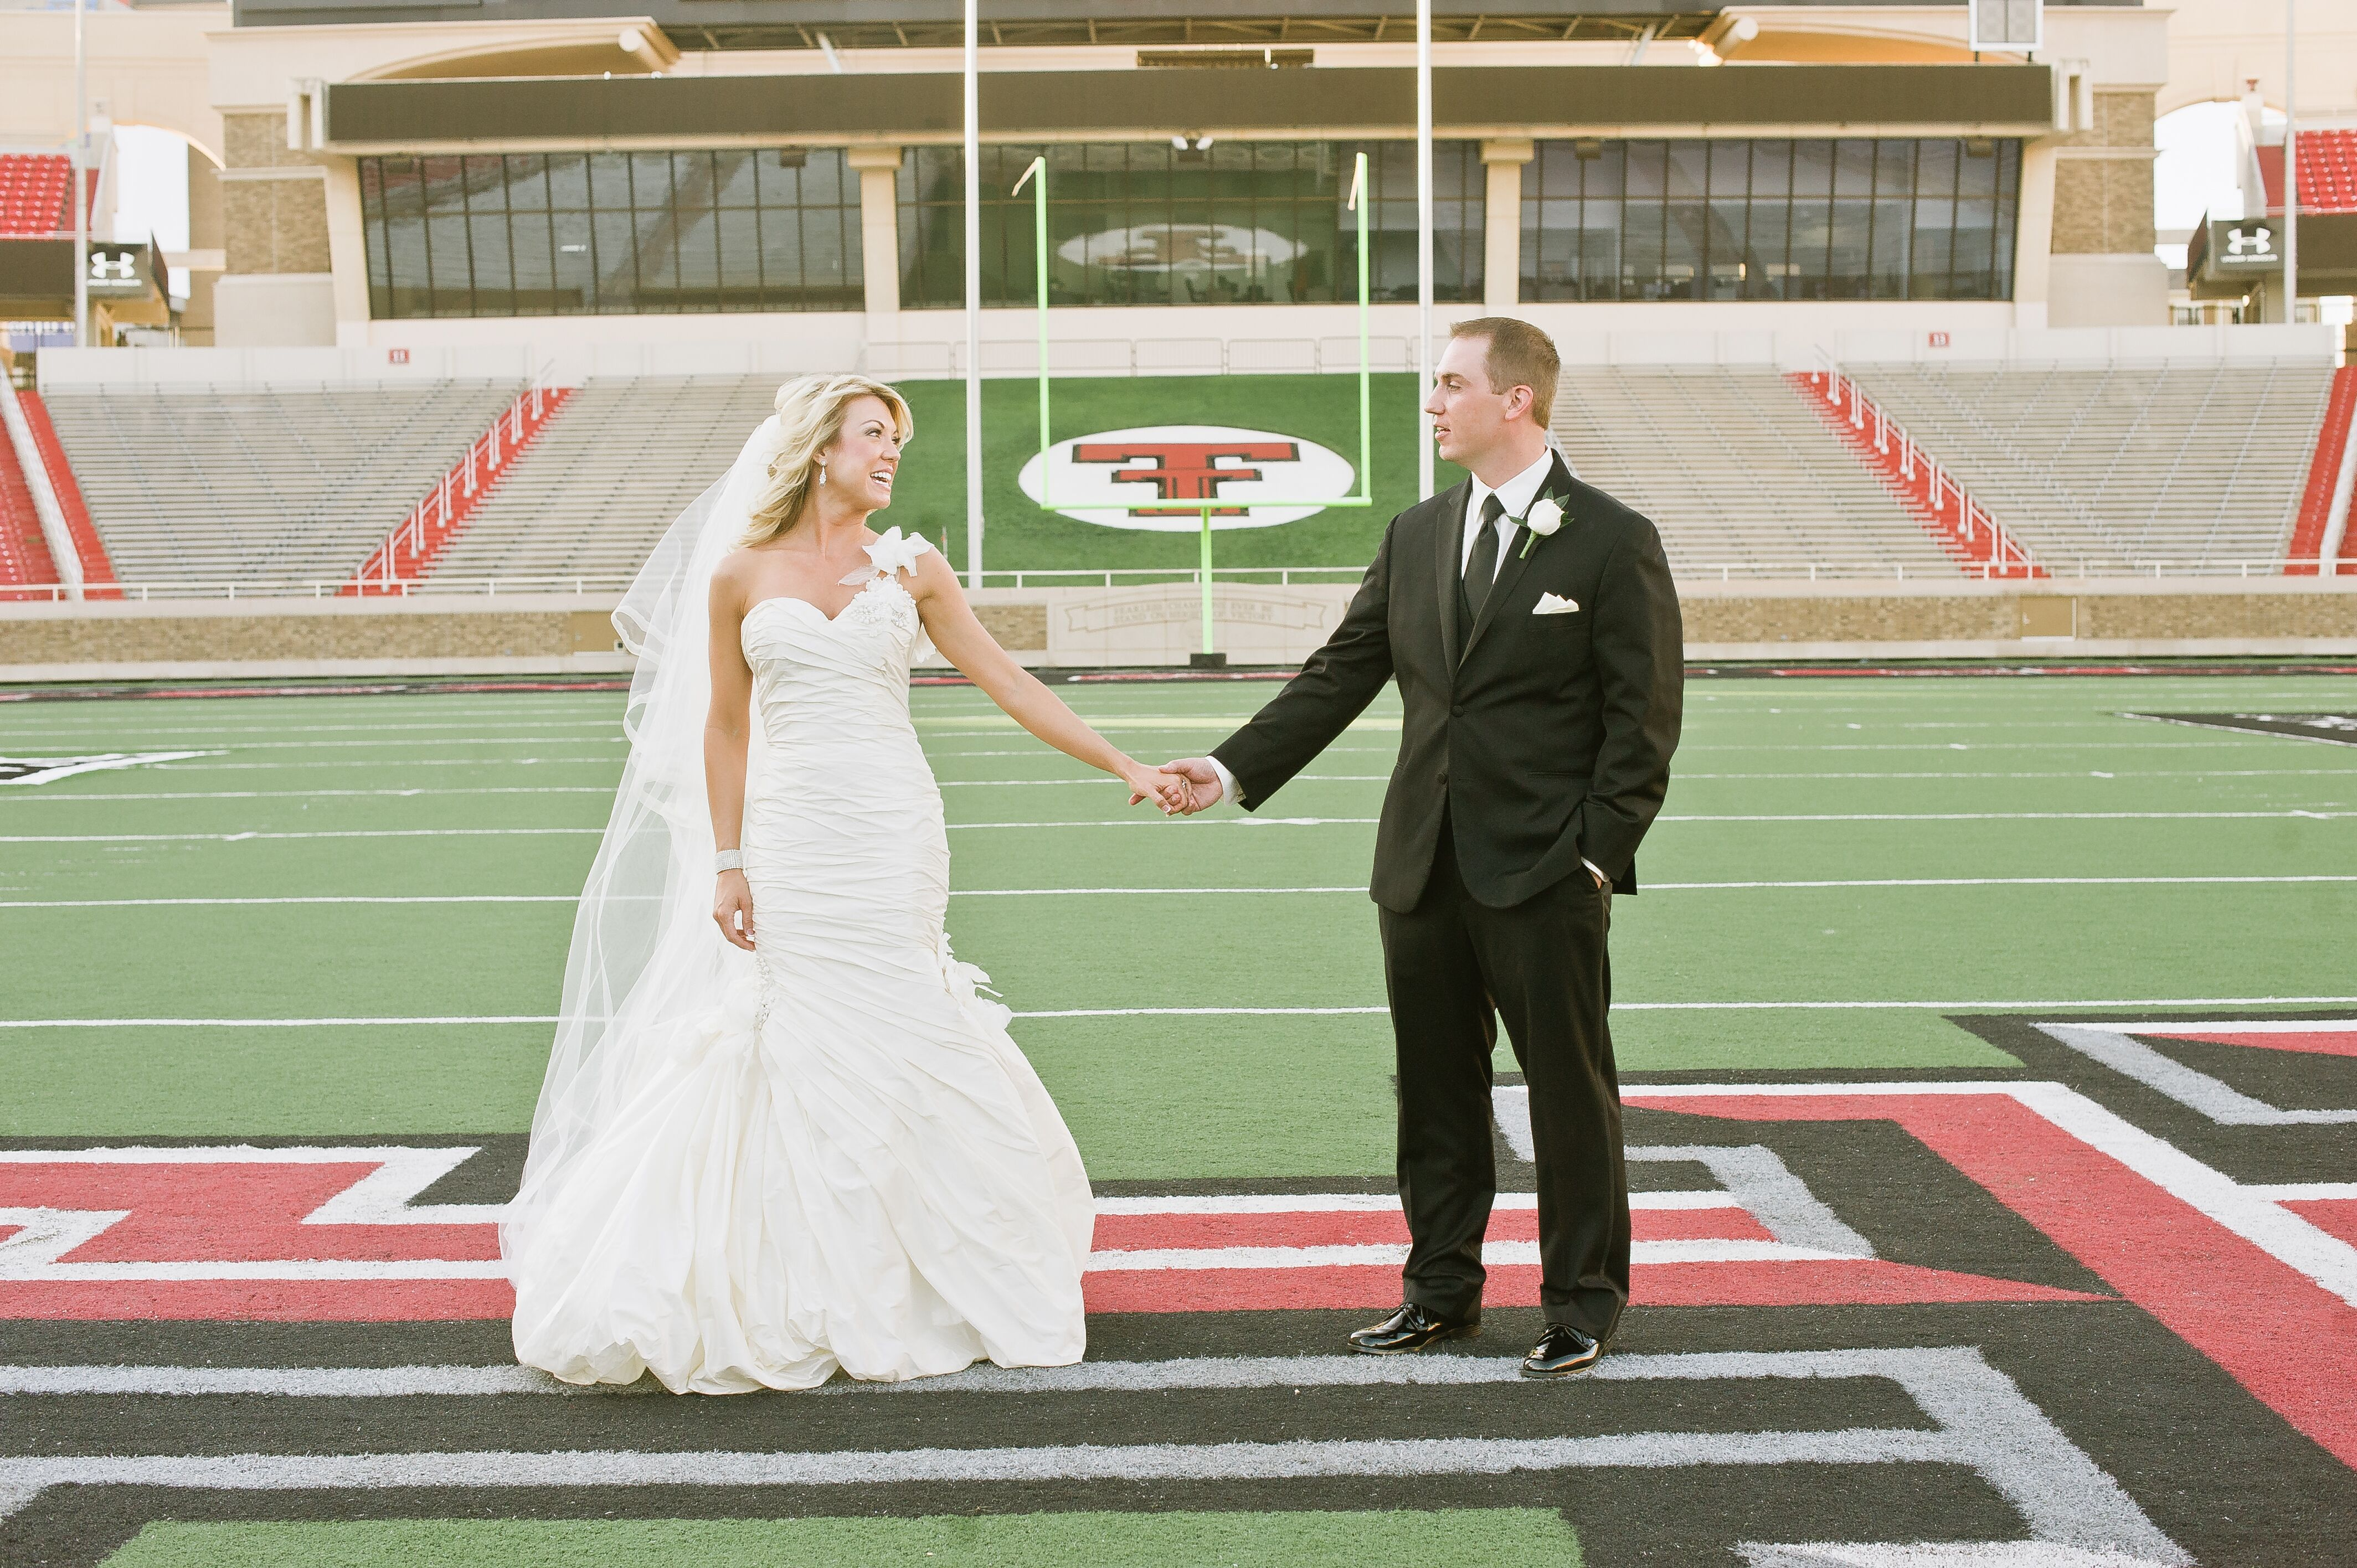 Wedding Invitations Lubbock Tx: An Elegant Wedding At The Texas Tech Club In Lubbock, Texas